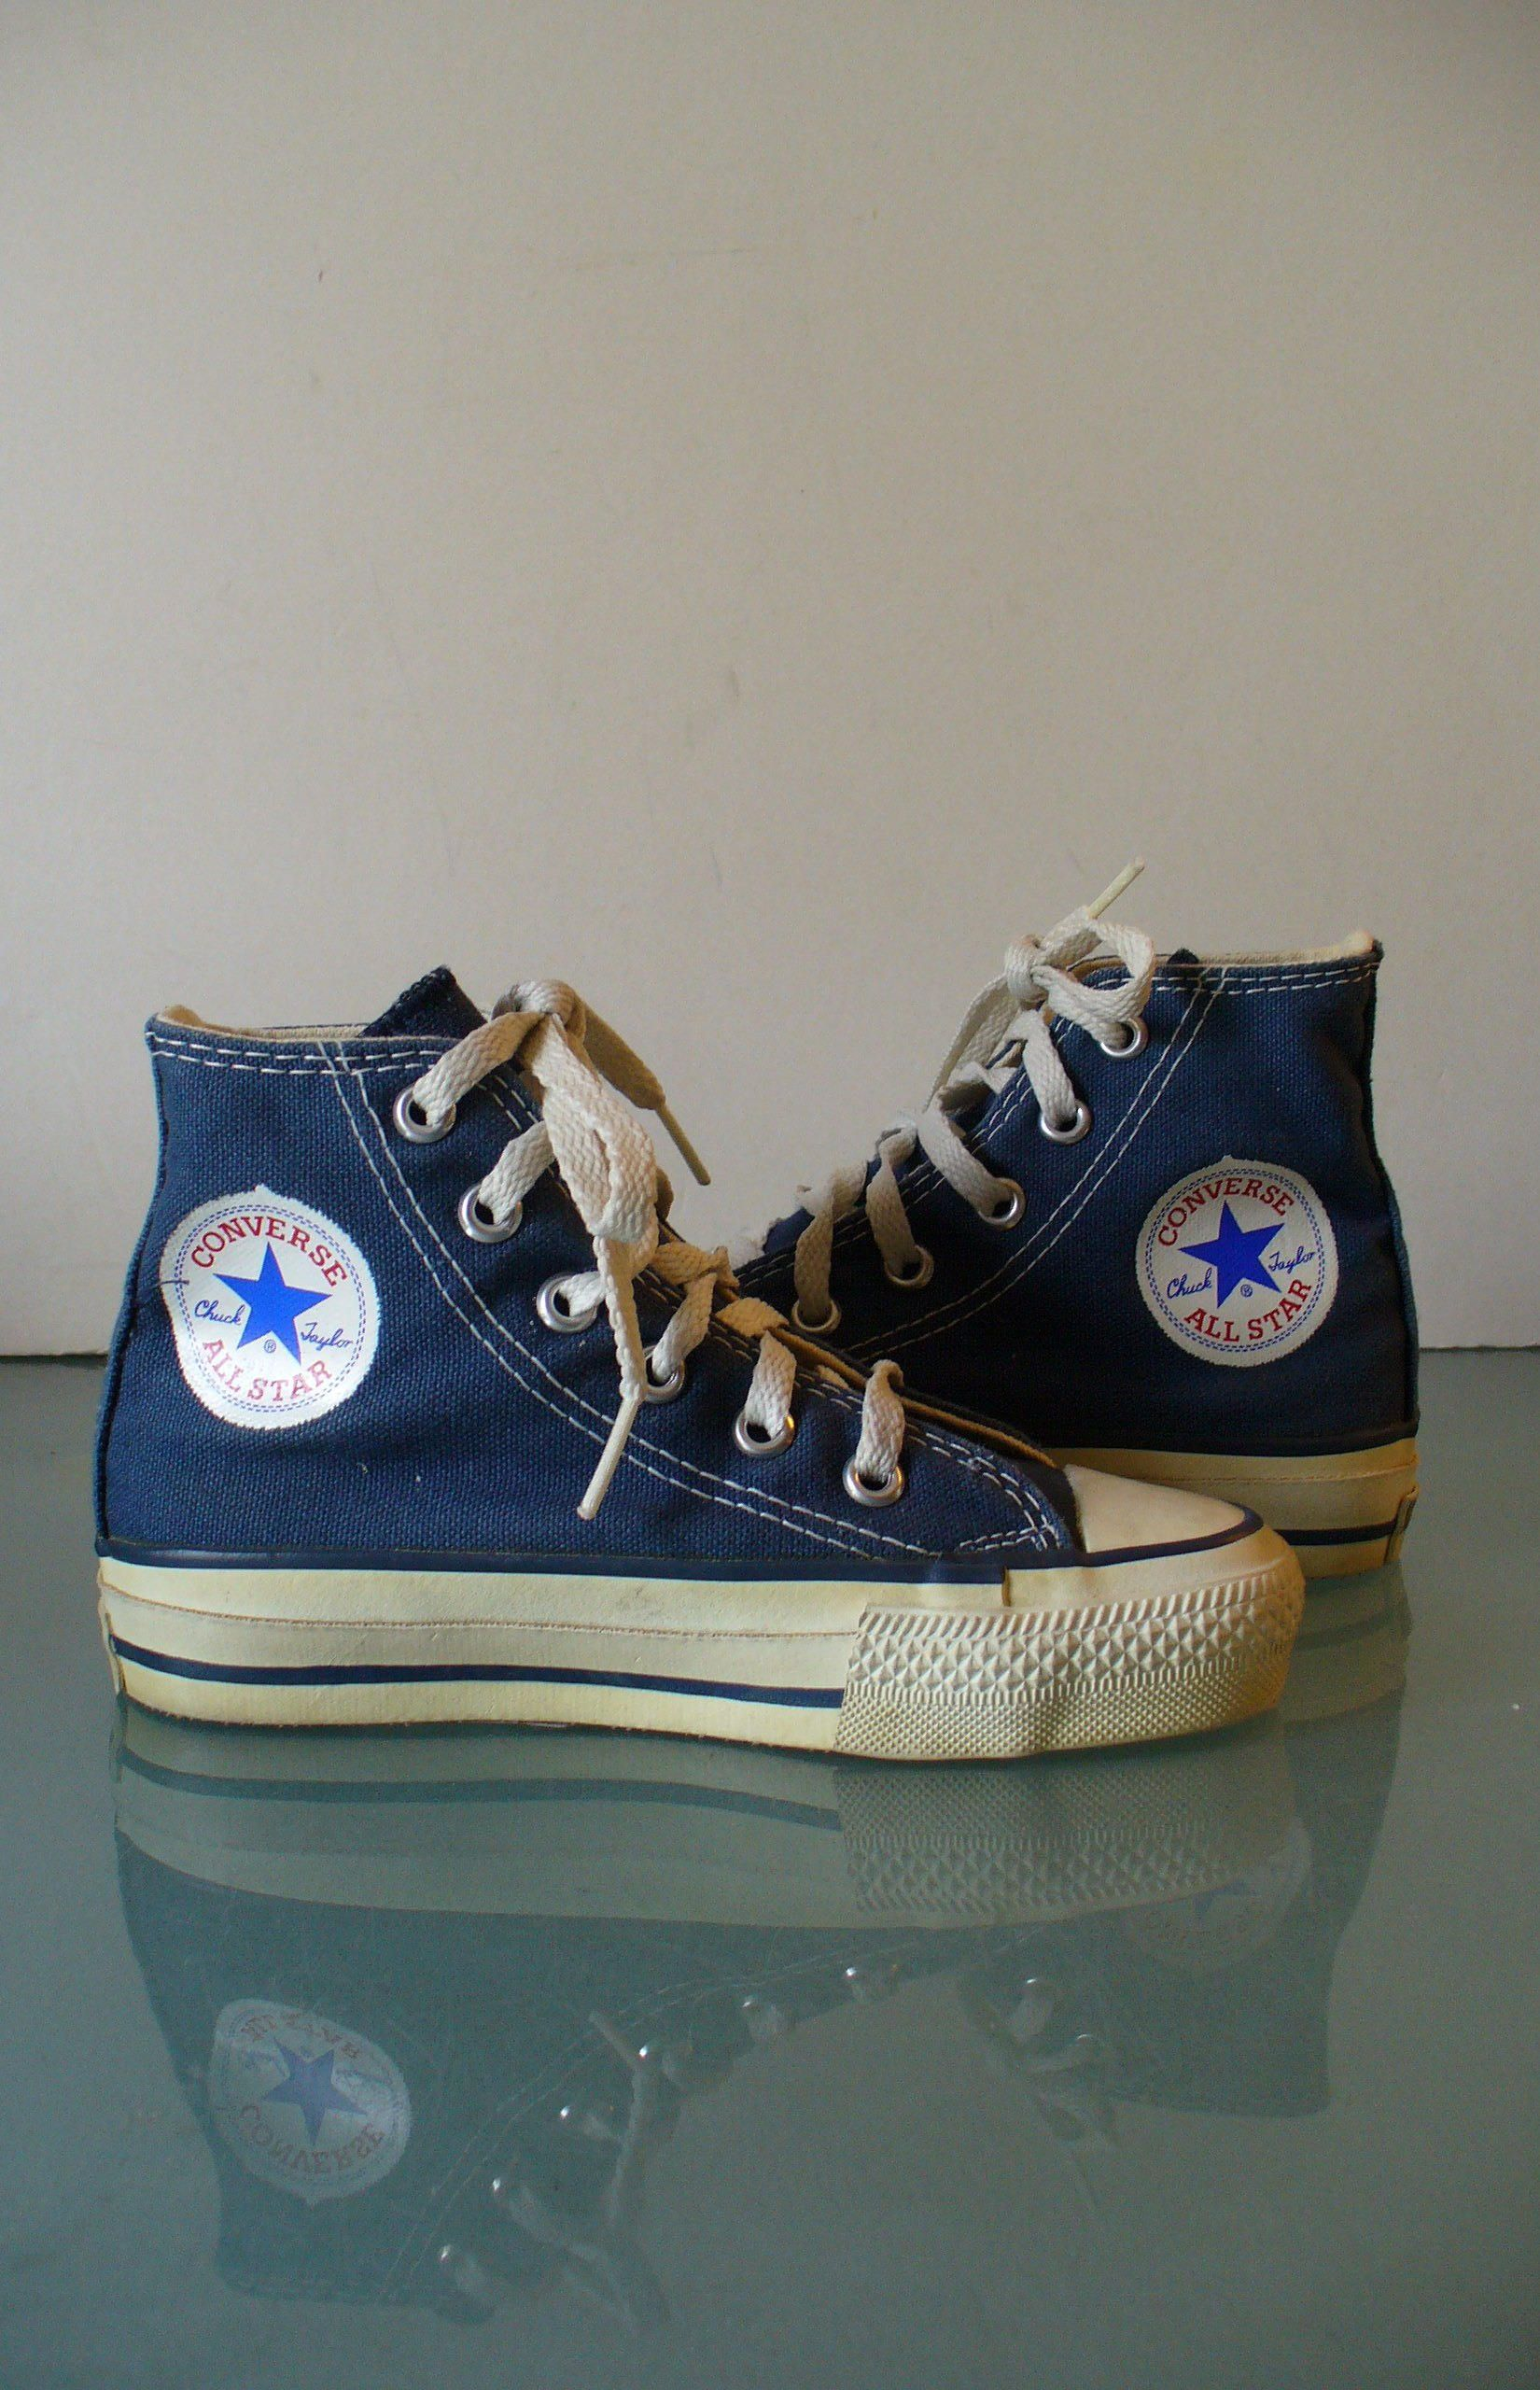 Vintage Never Worn Chuck Taylor High Top Converse All Star